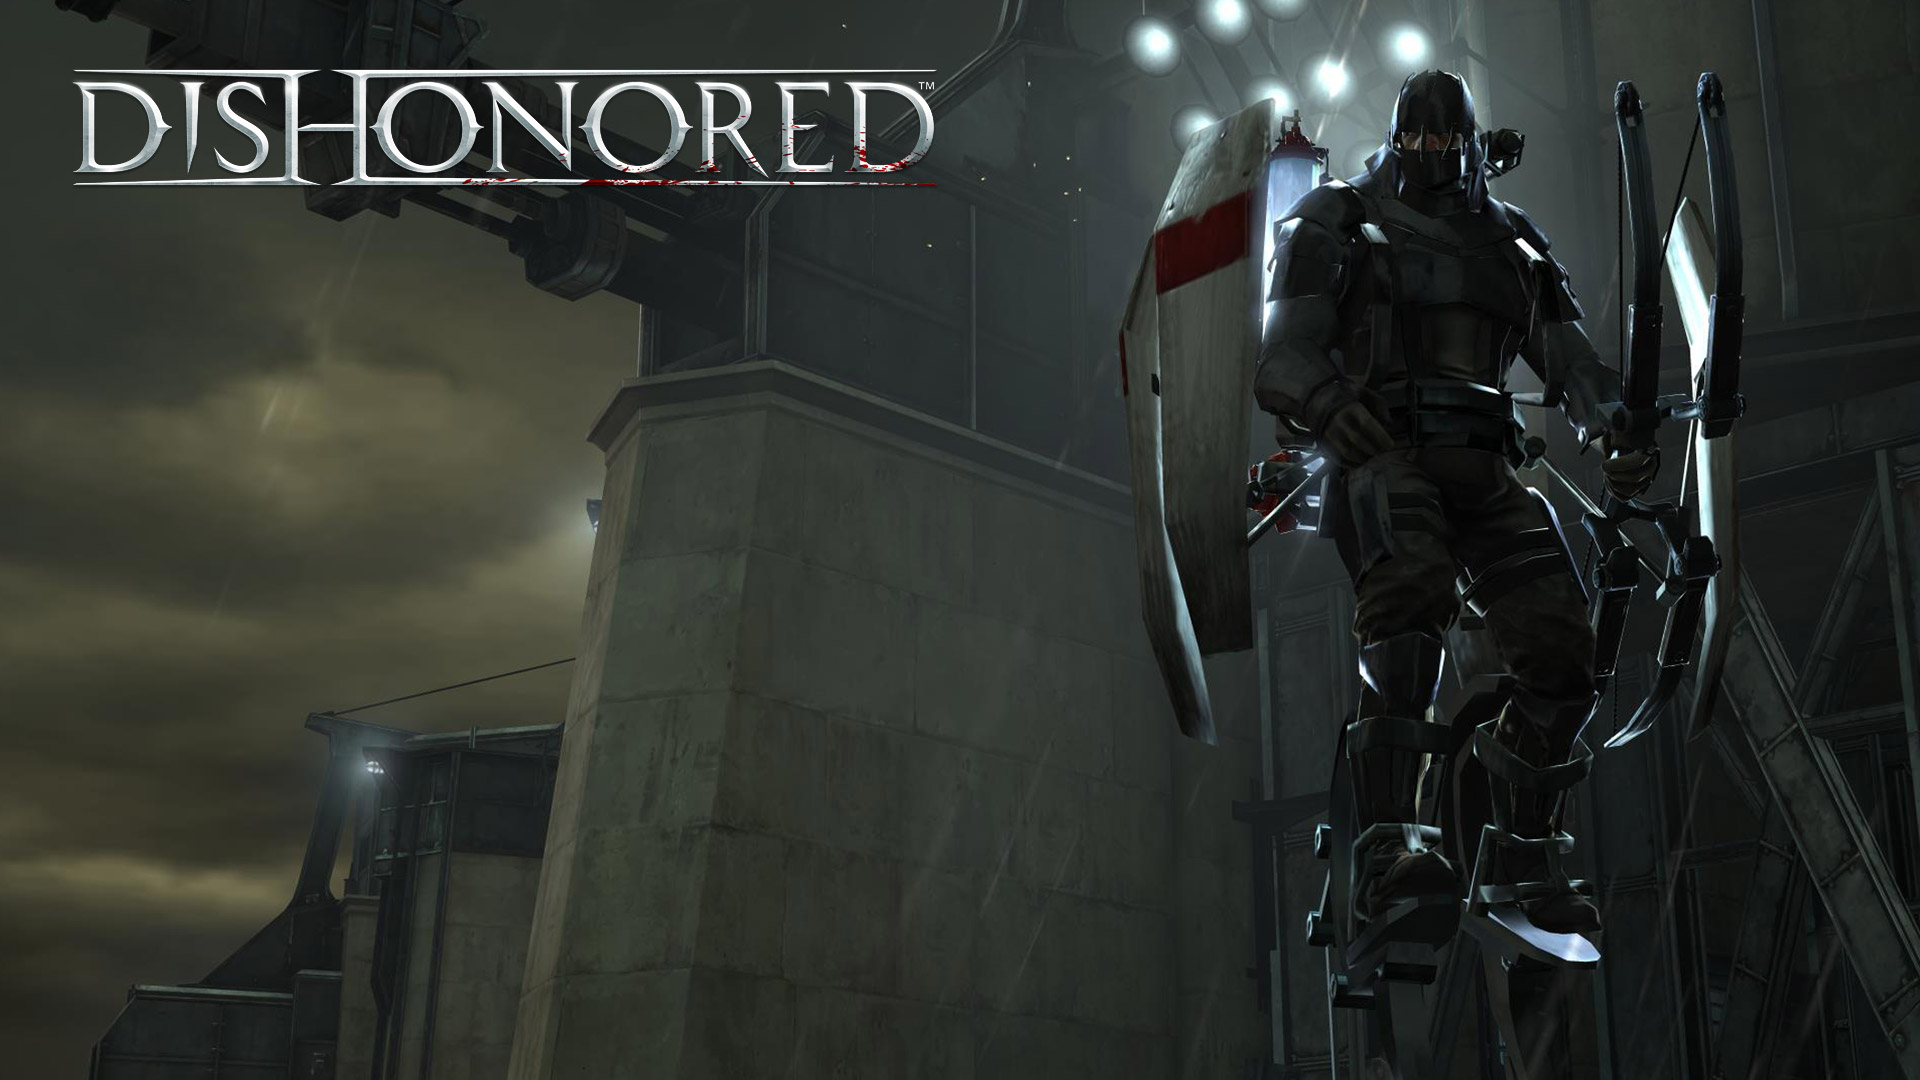 Dishonored Wallpaper in 1920x1080